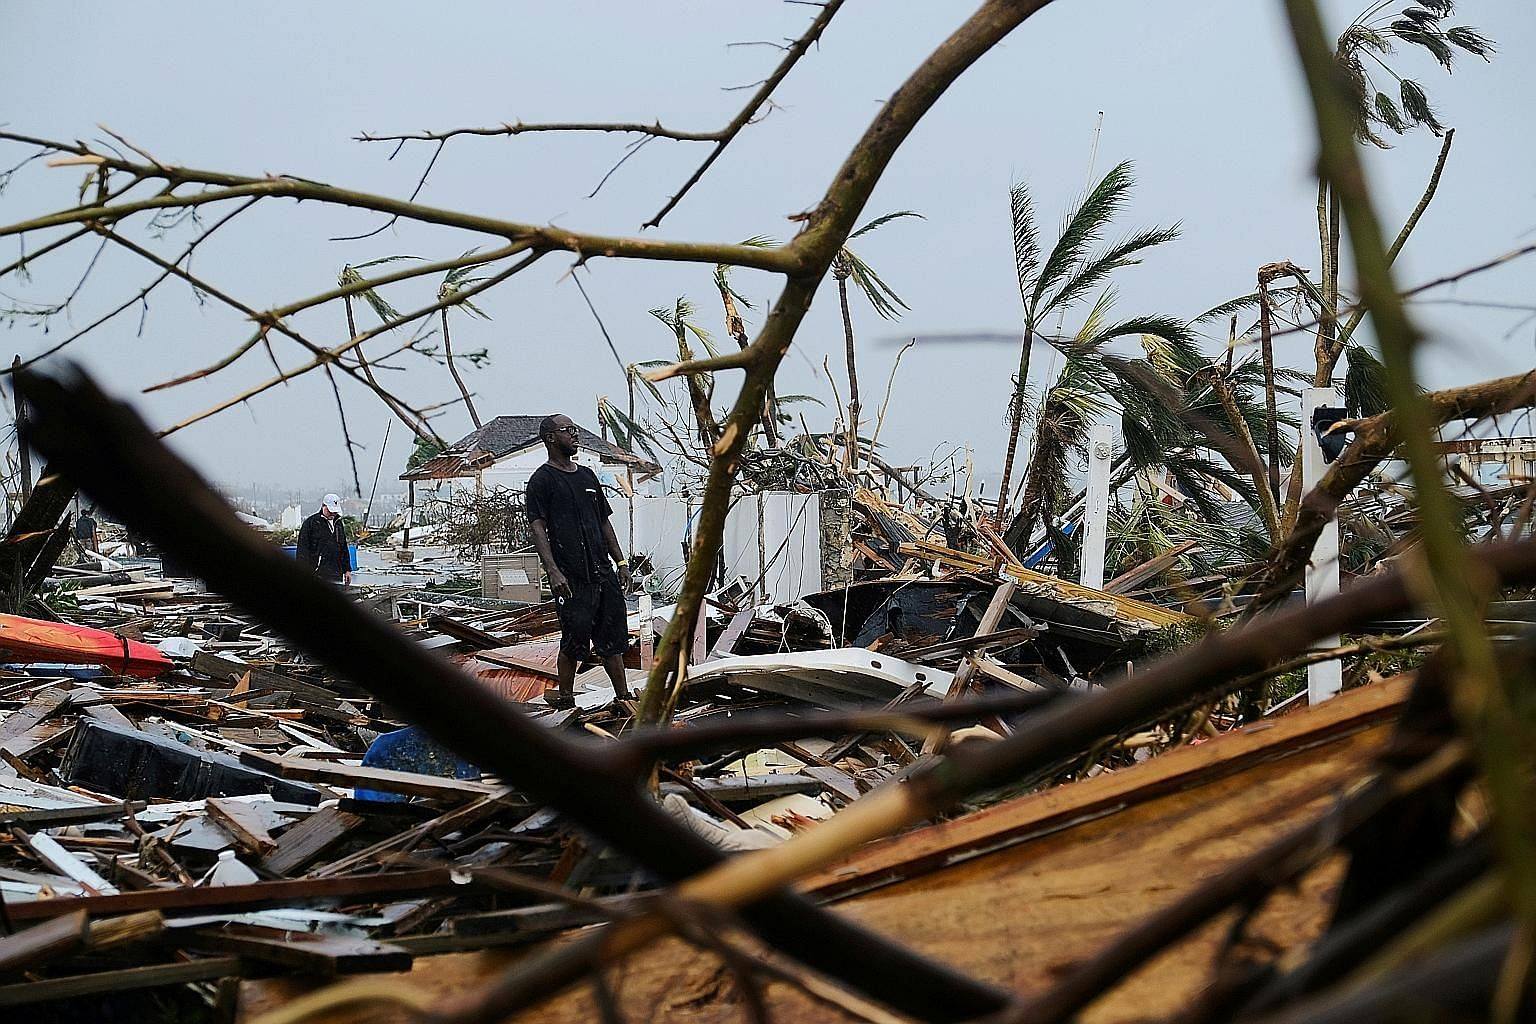 A resident surveying damage in the aftermath of Hurricane Dorian on the Great Abaco island town of Marsh Harbour, Bahamas, on Monday. At least 20 people have been killed and thousands remain missing after the most damaging storm to hit the island nat